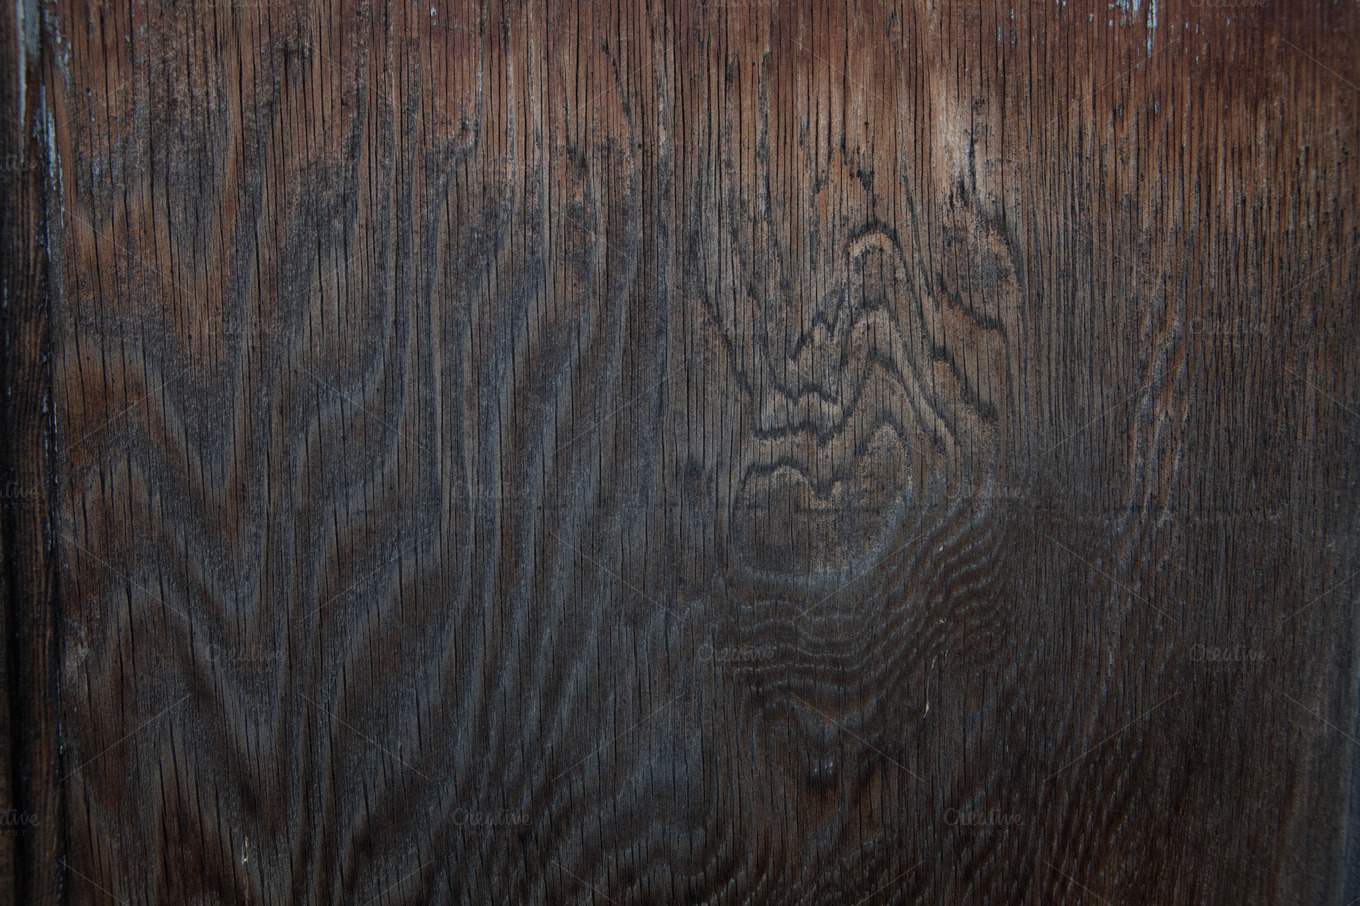 Rustic Wood Texture - Dark Brown ~ Abstract Photos on ...